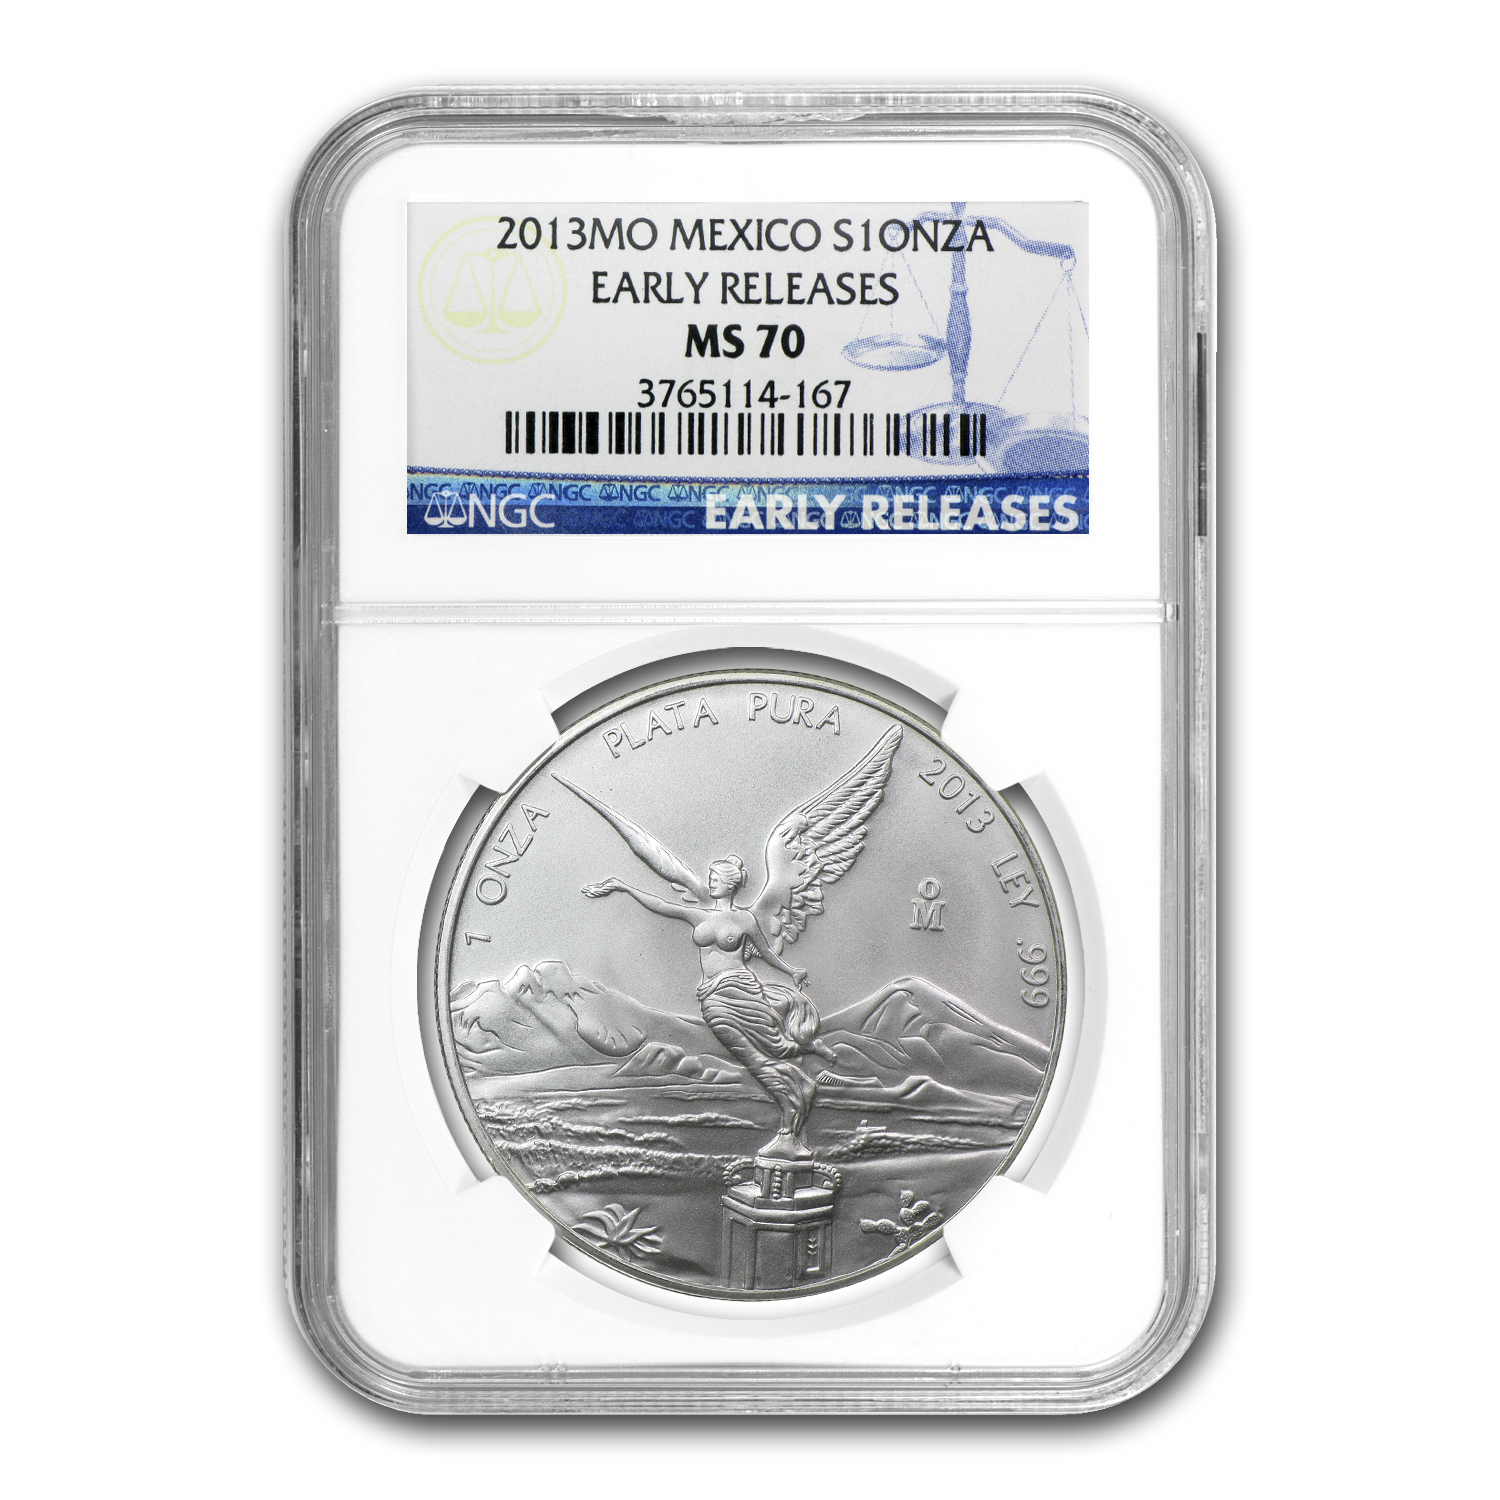 2013 Mexico 1 oz Silver Libertad MS-70 NGC (Early Release)